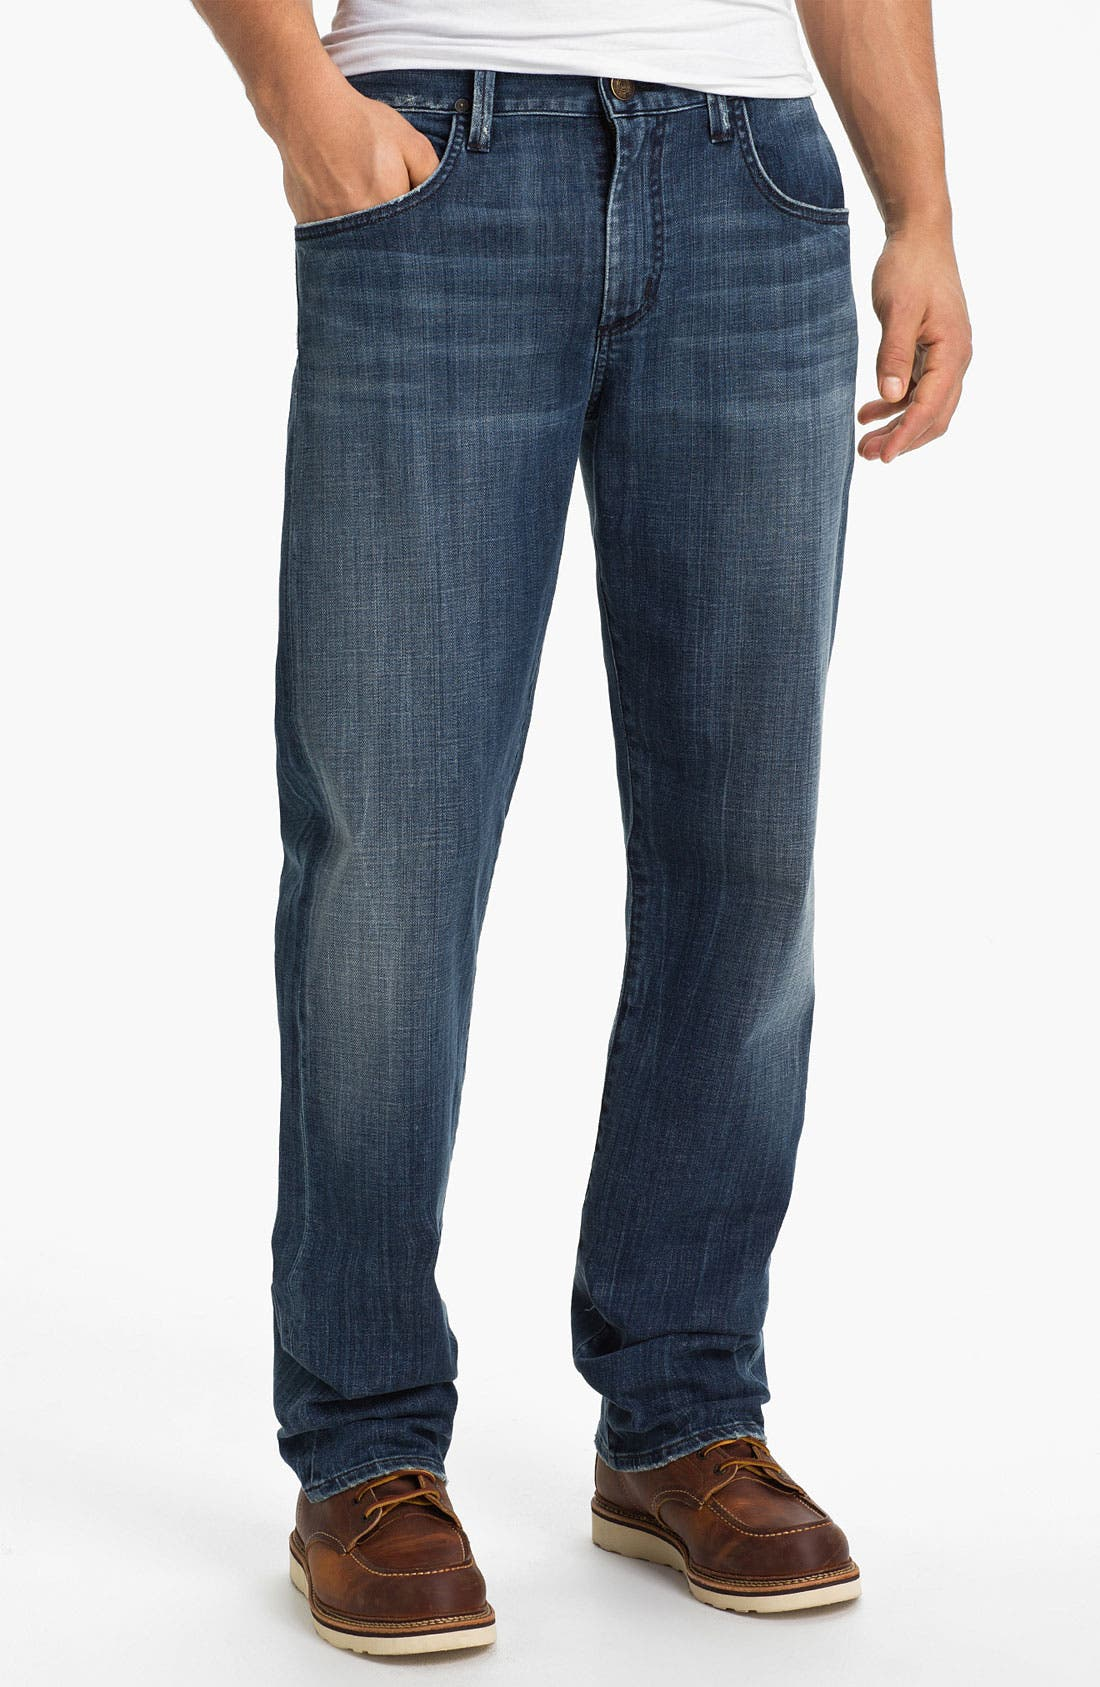 Alternate Image 1 Selected - Citizens of Humanity 'Perfect' Relaxed Leg Jeans (Sterling)